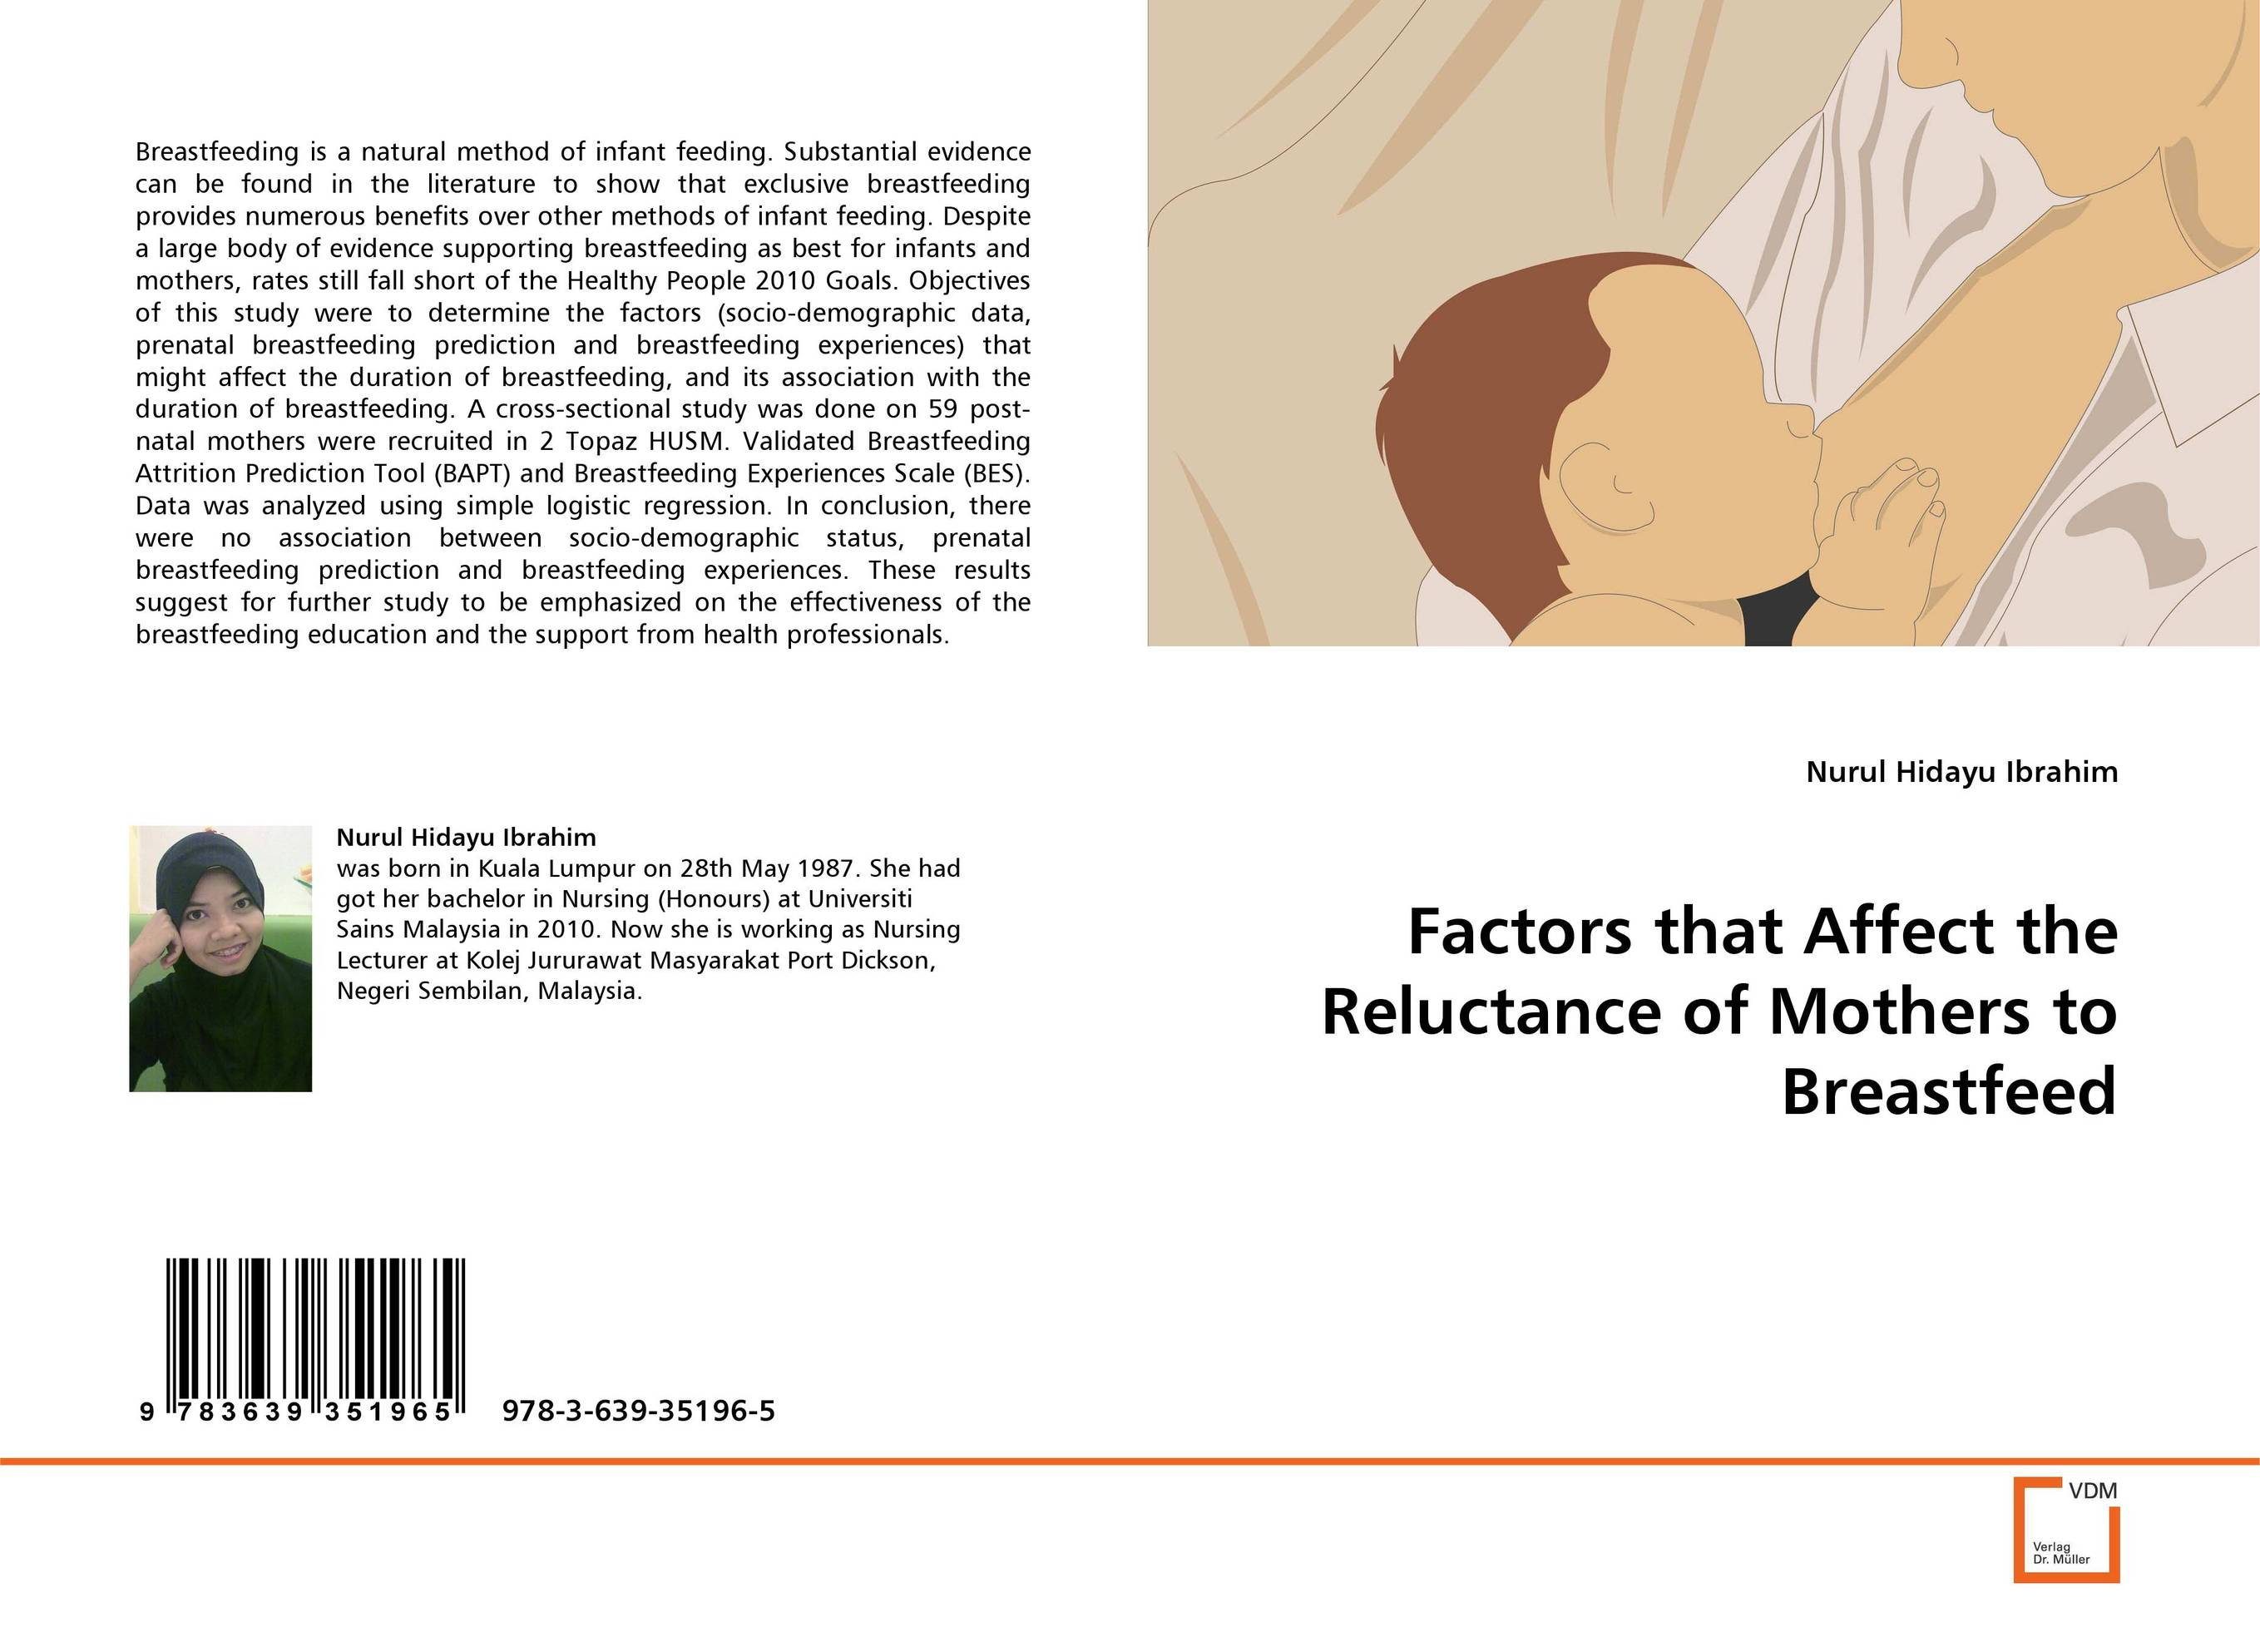 Factors that Affect the Reluctance of Mothers to Breastfeed breastfeeding knowledge in dhaka bangladesh